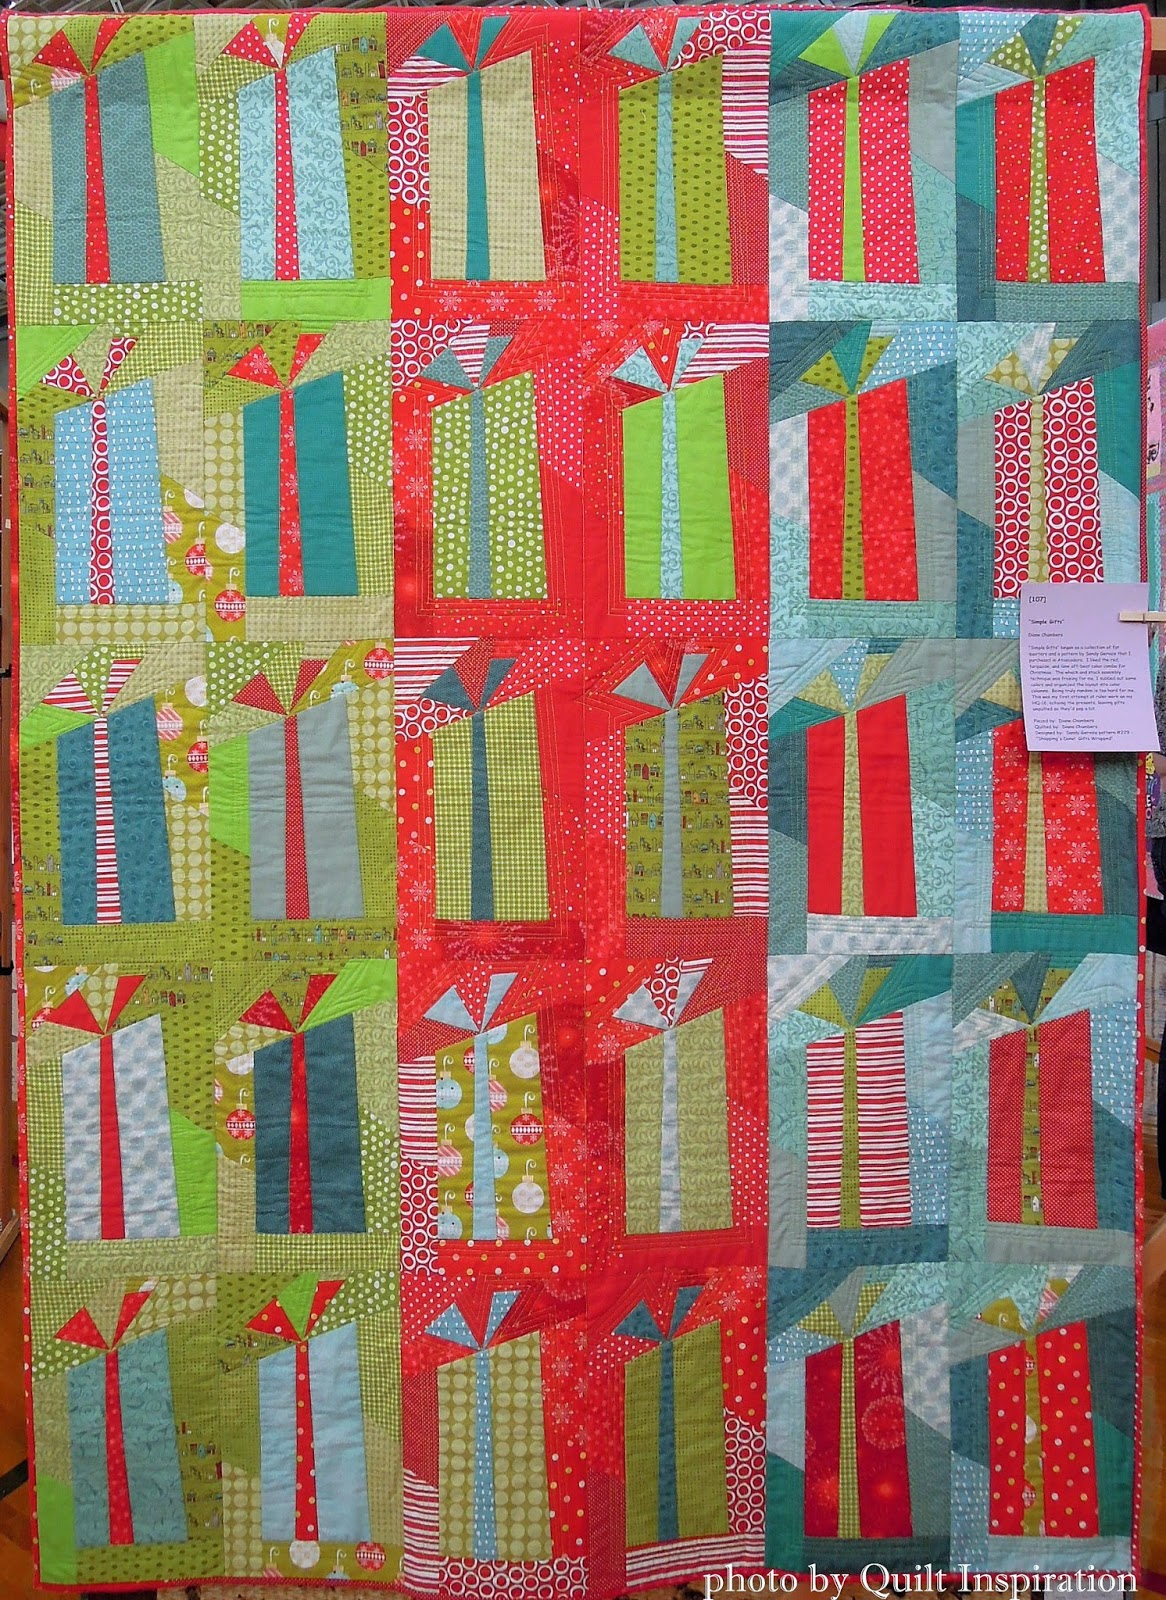 Quilt inspiration twelve days of christmas quilts simple gifts negle Choice Image